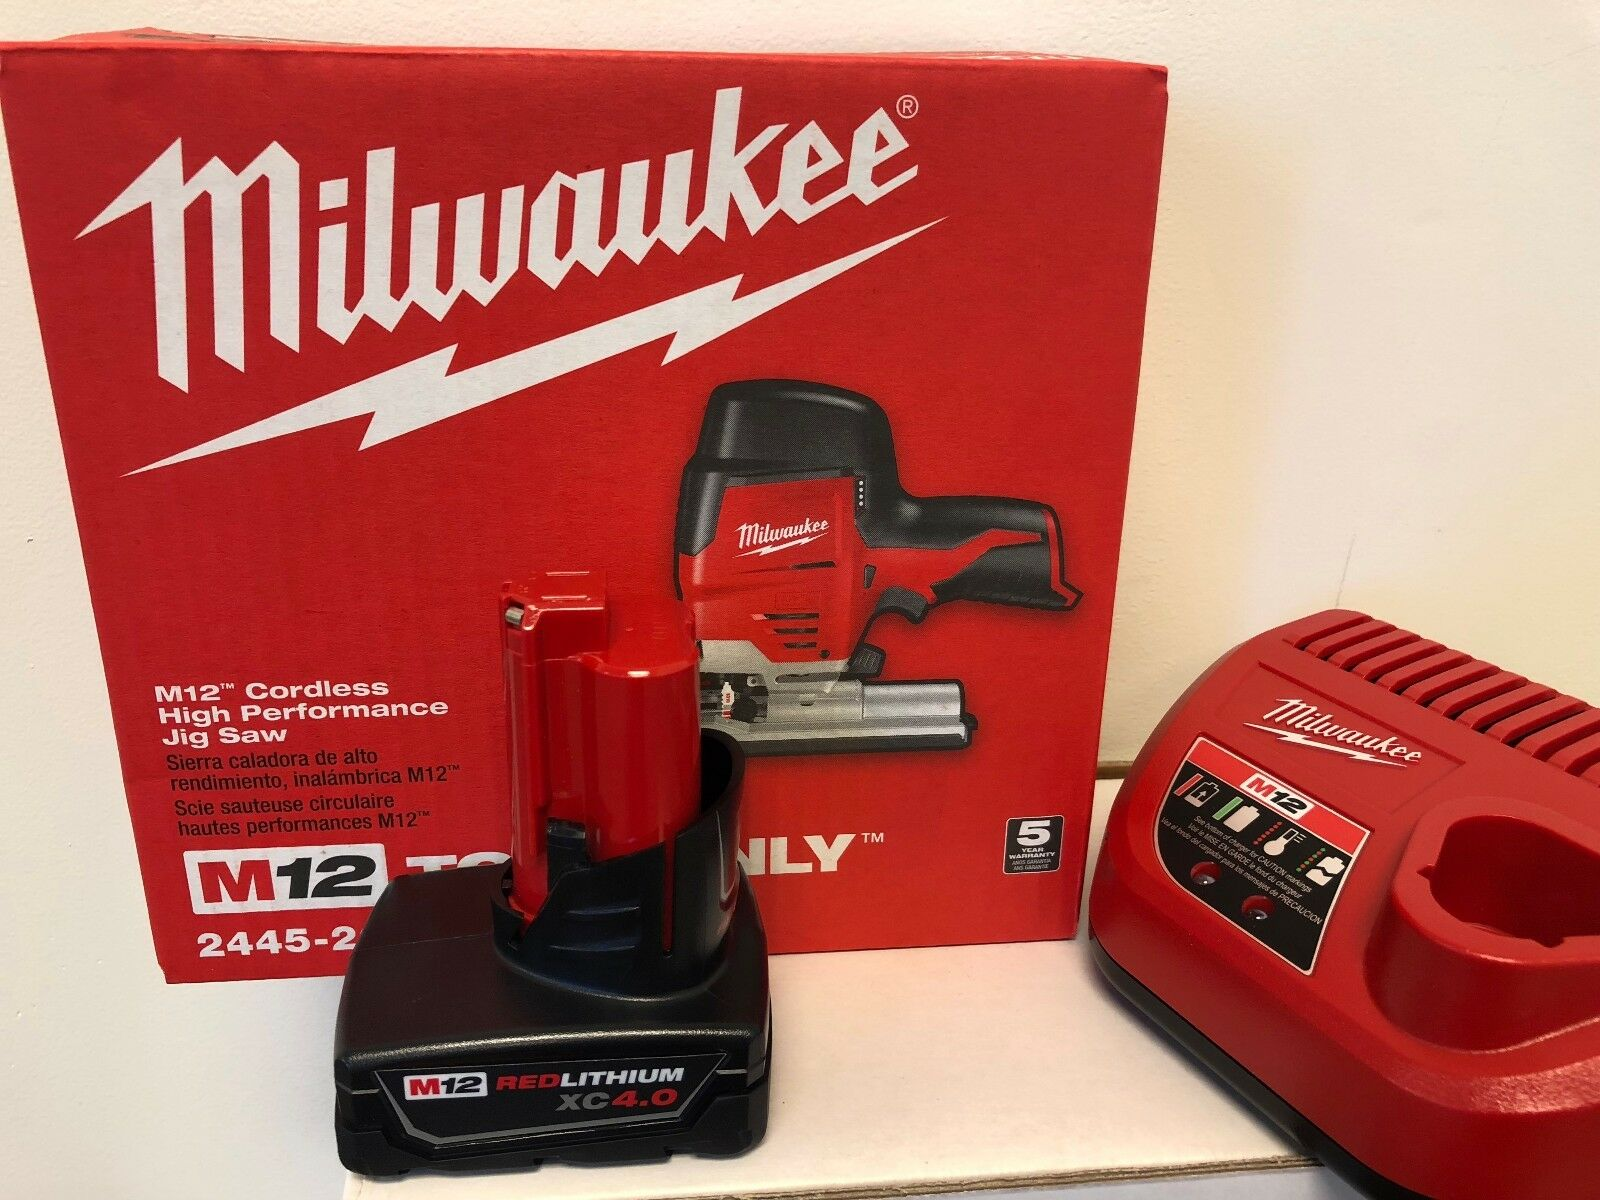 Milwaukee 2445-20 M12 Cordless Jig Saw + (1) 4.0AH Battery + (1) Charger